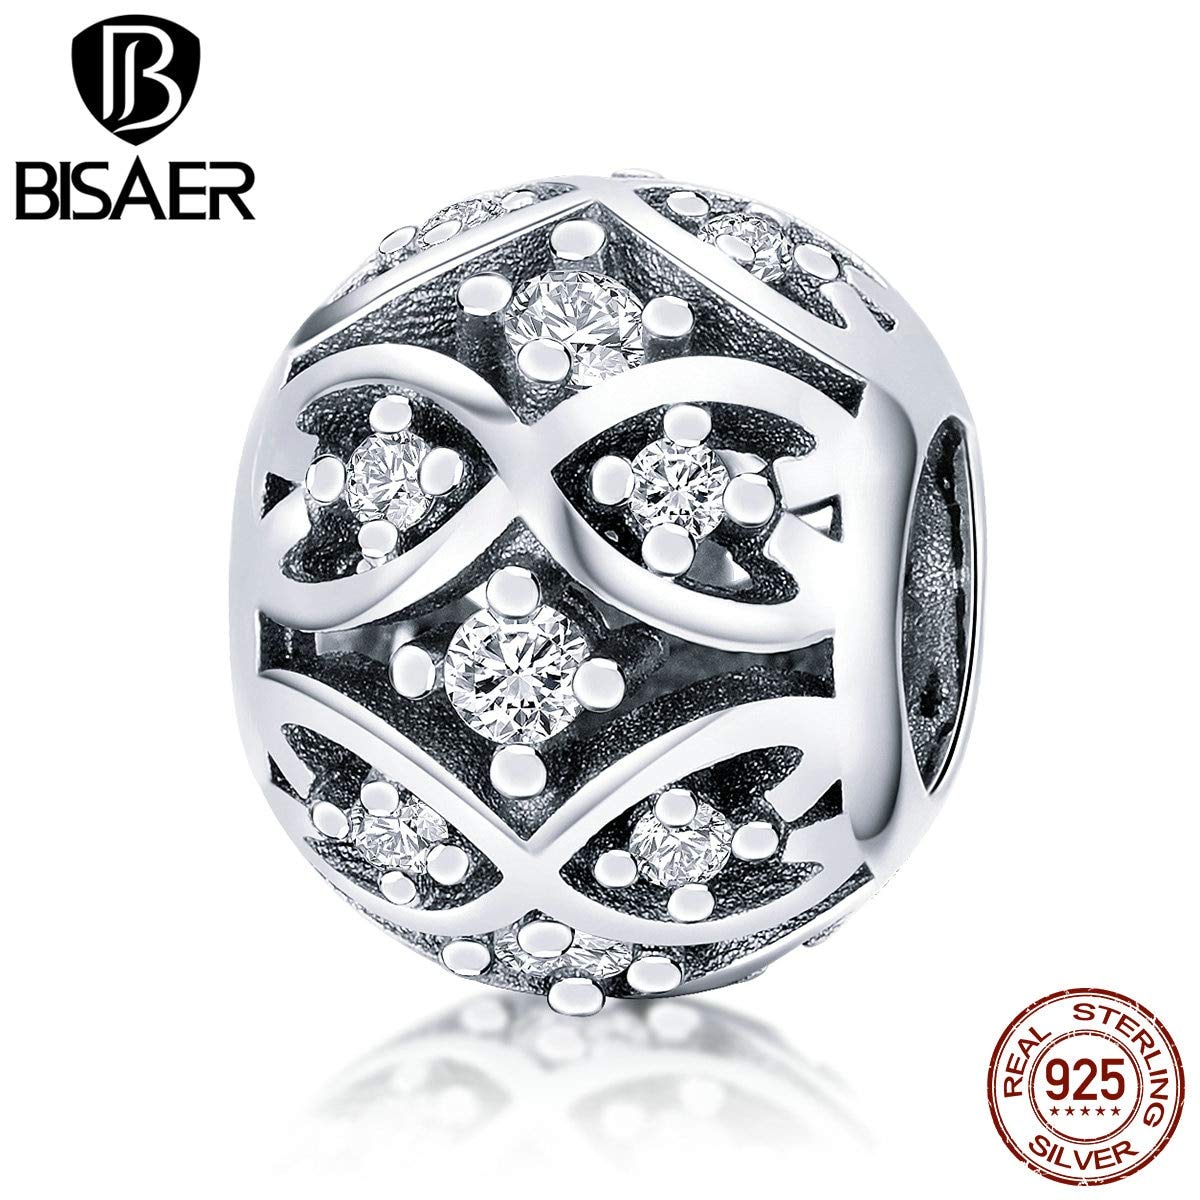 Calvas Crystal CZ 925 Sterling Silver Forever Heart Pave Charms Beads Fit Charm Bracelets for Women Beads Silver 925 Jewelry ECC732